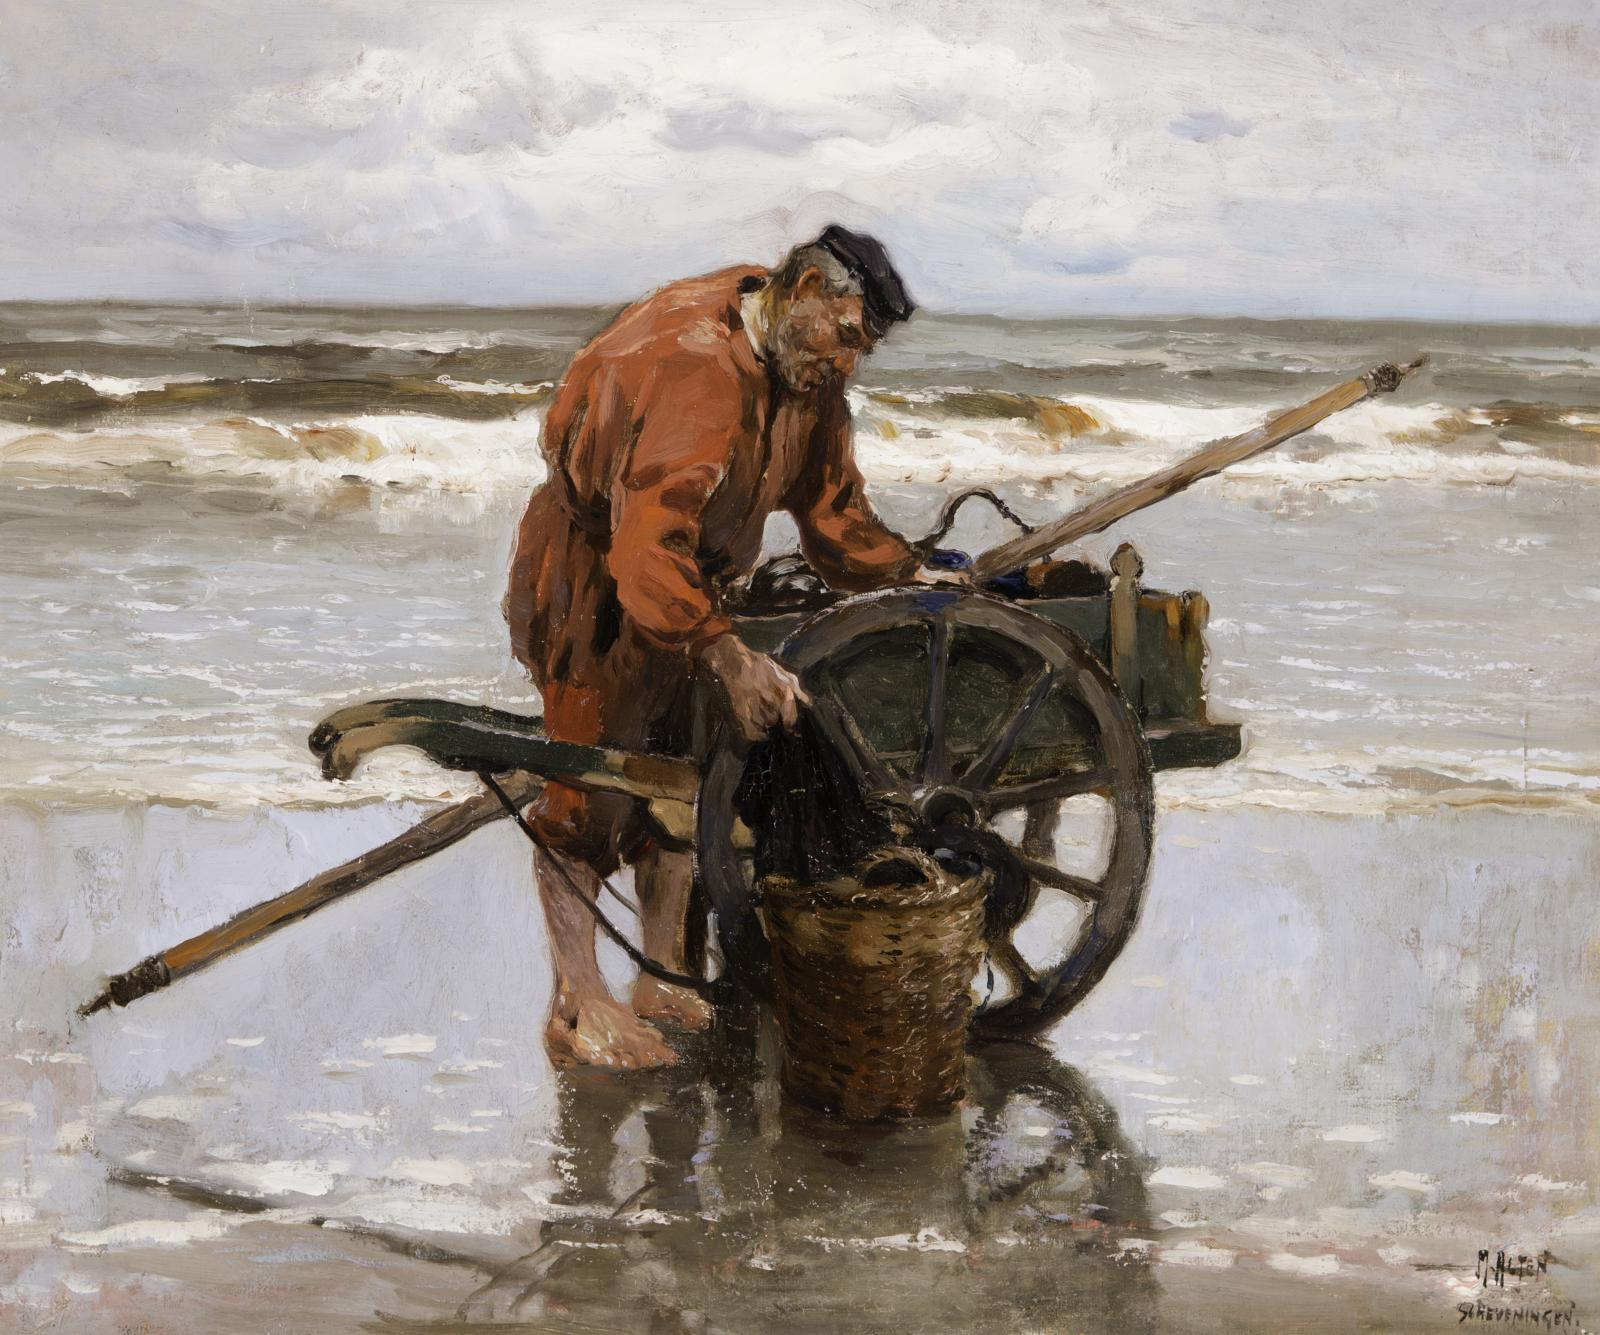 Man in red jacket standing on the beach next to a wooden cart.